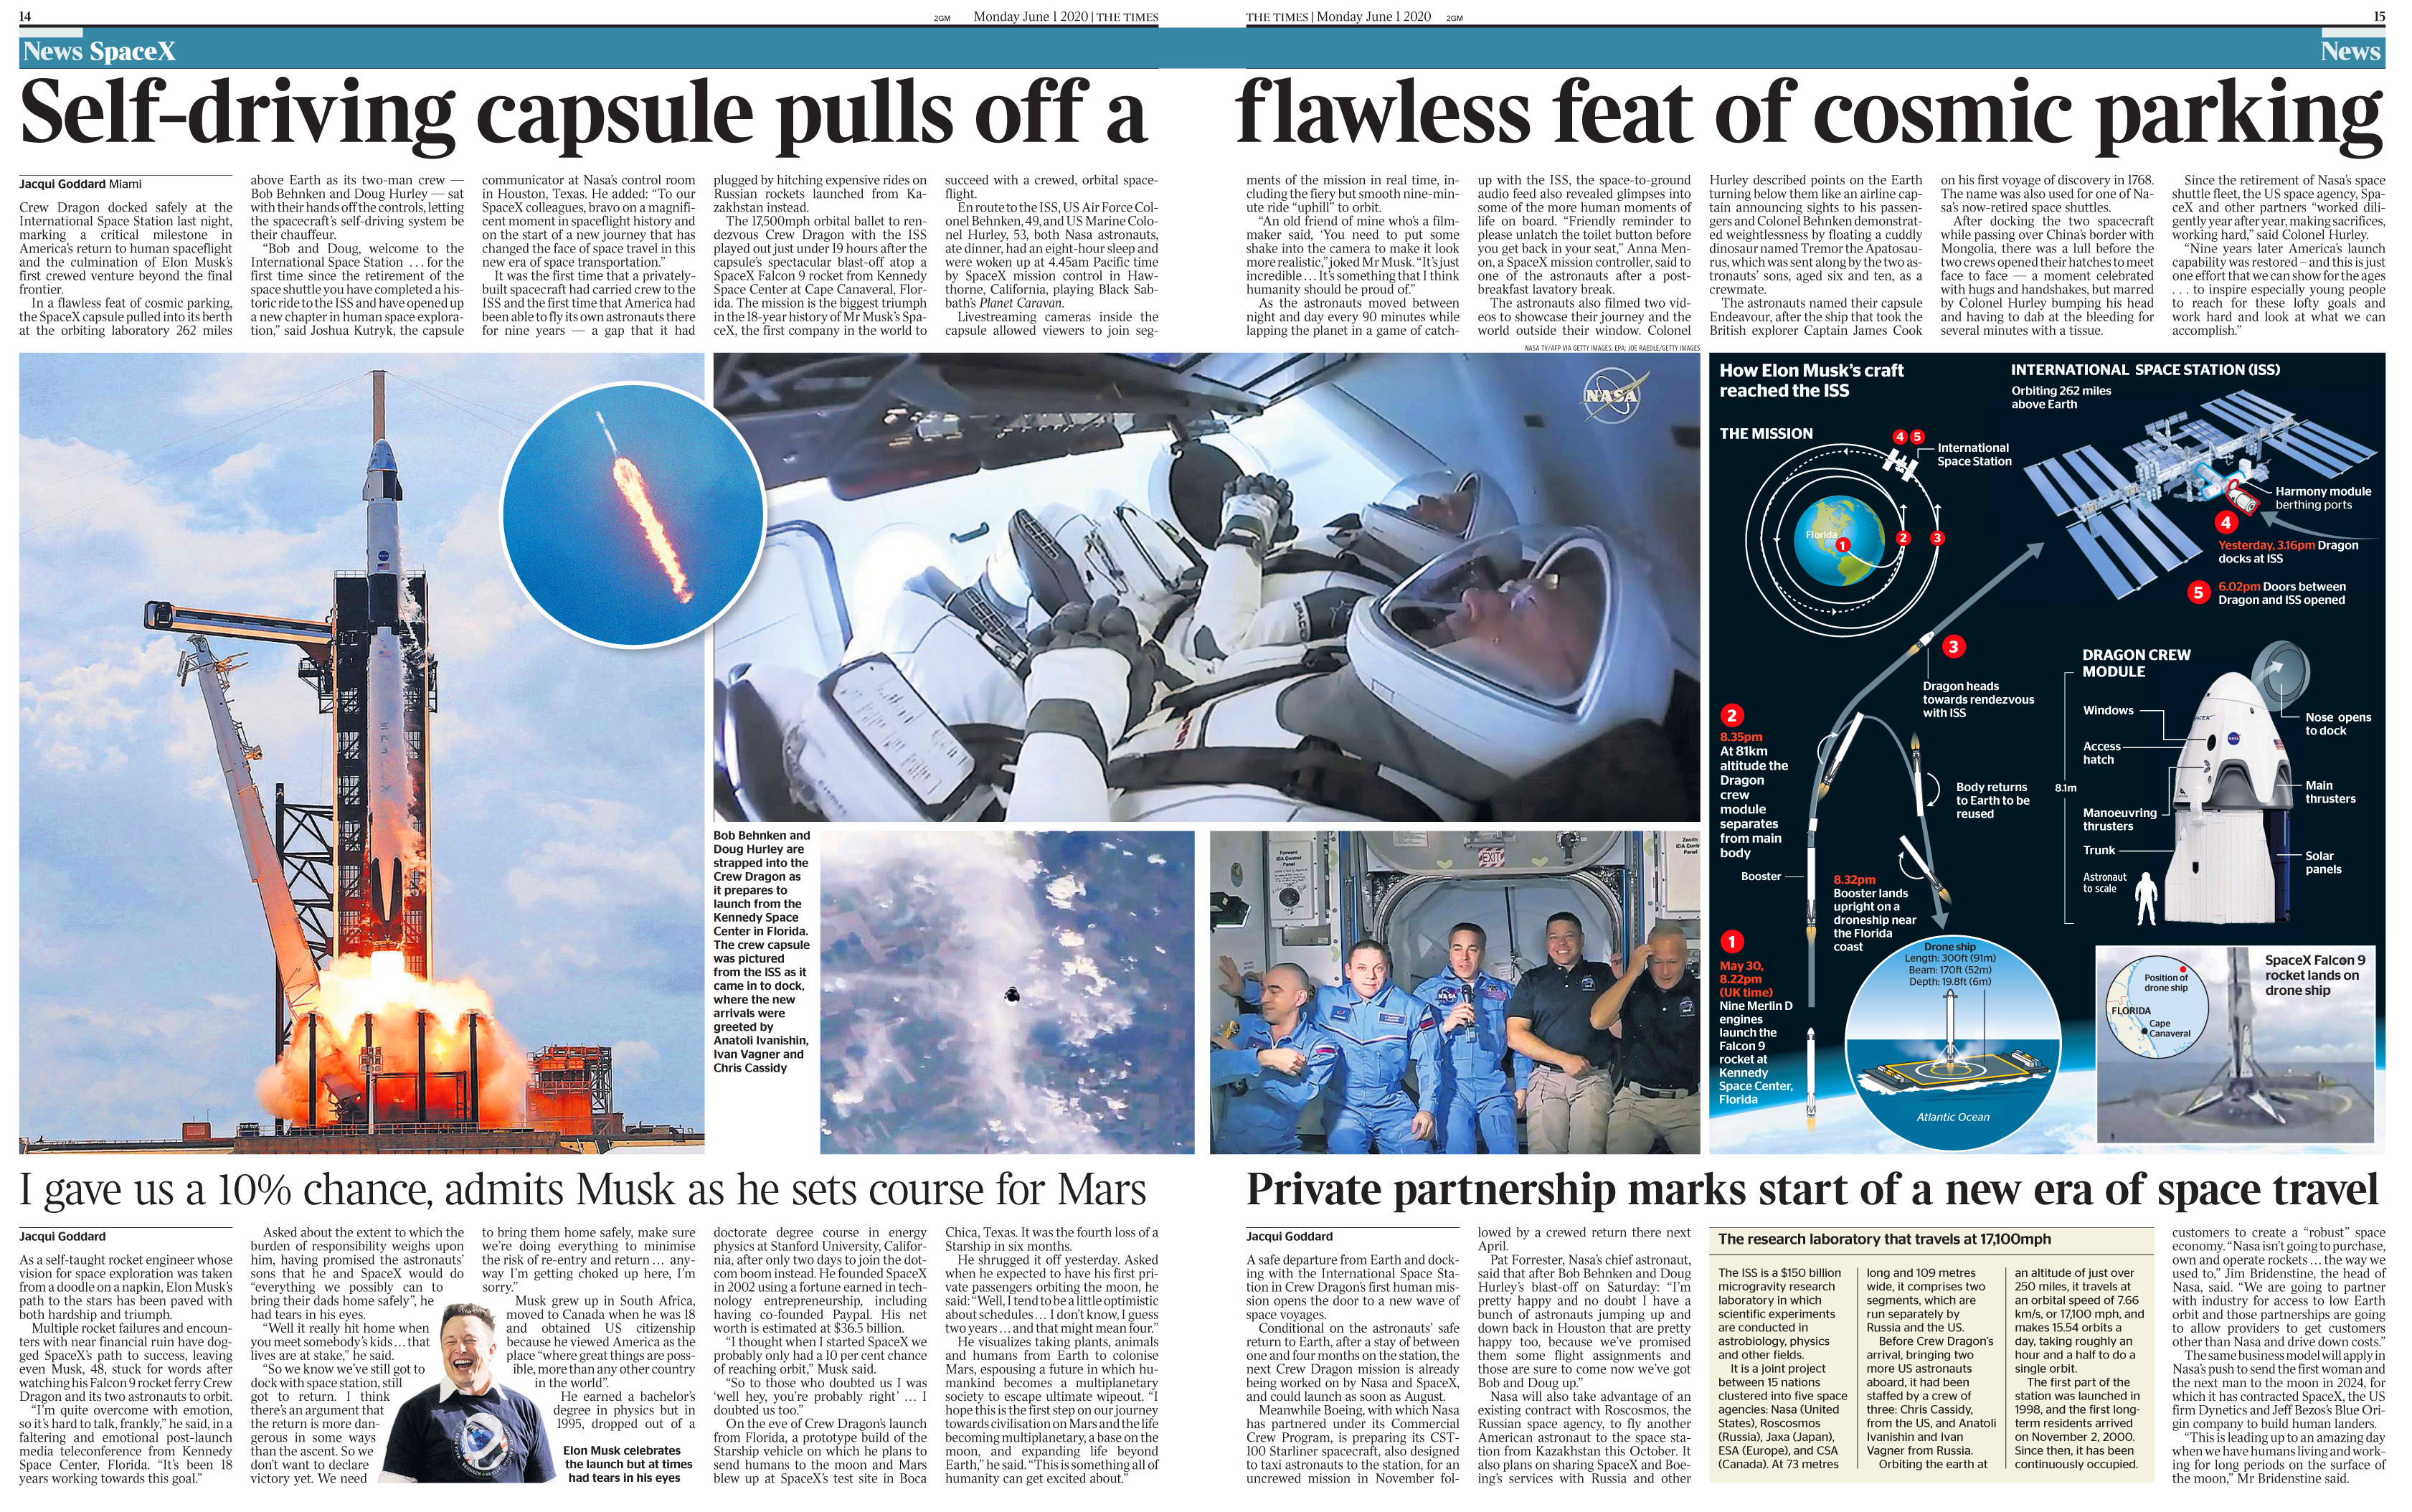 The Times - June 1 2020 SpaceX.jpg